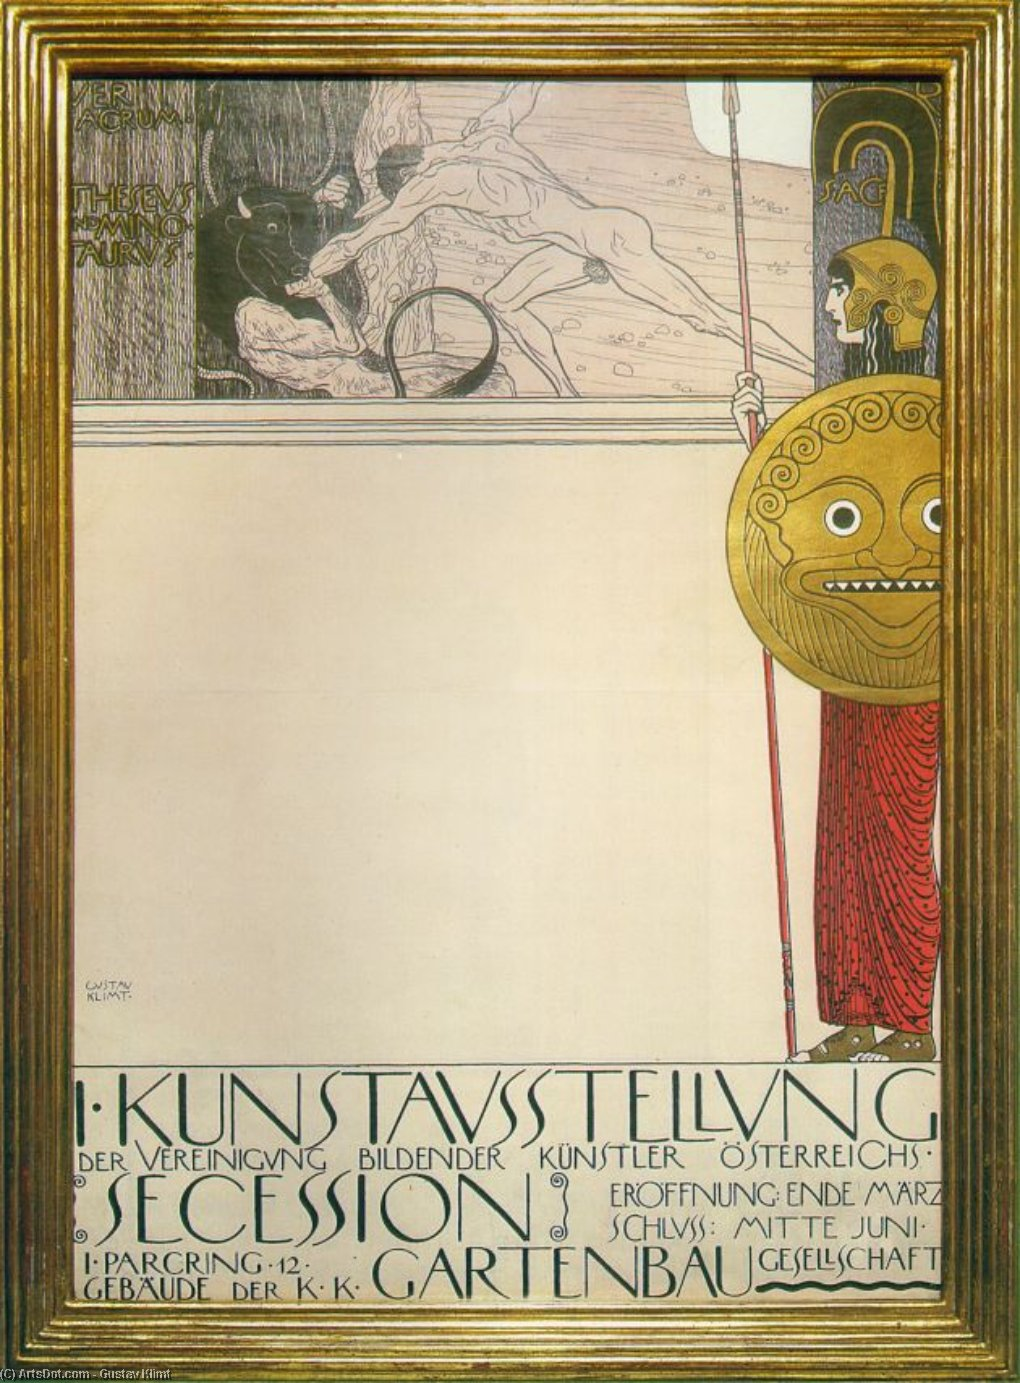 Poster For The 1st Secession Exhibition Gustav Klimt Wikioo Org The Encyclopedia Of Fine Arts